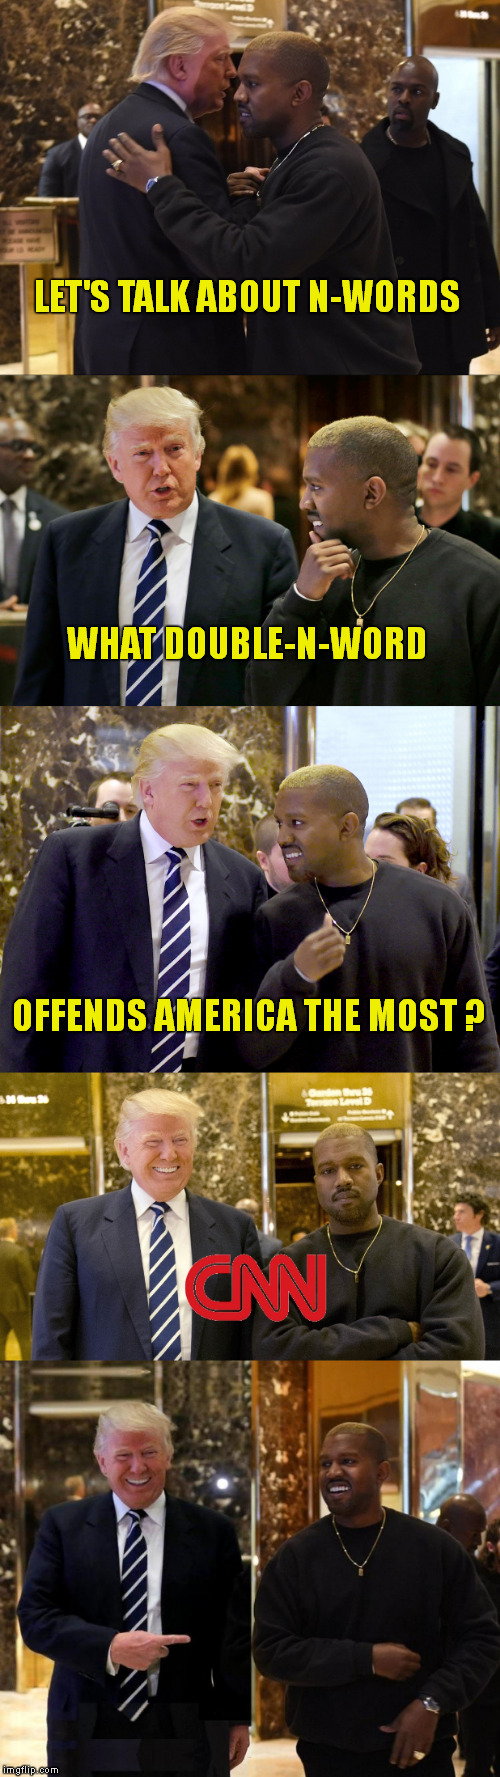 Dragon Talk | LET'S TALK ABOUT N-WORDS OFFENDS AMERICA THE MOST ? WHAT DOUBLE-N-WORD | image tagged in meme,bad pun trump,cnn fake news,cnn phony trump news,kanye west | made w/ Imgflip meme maker